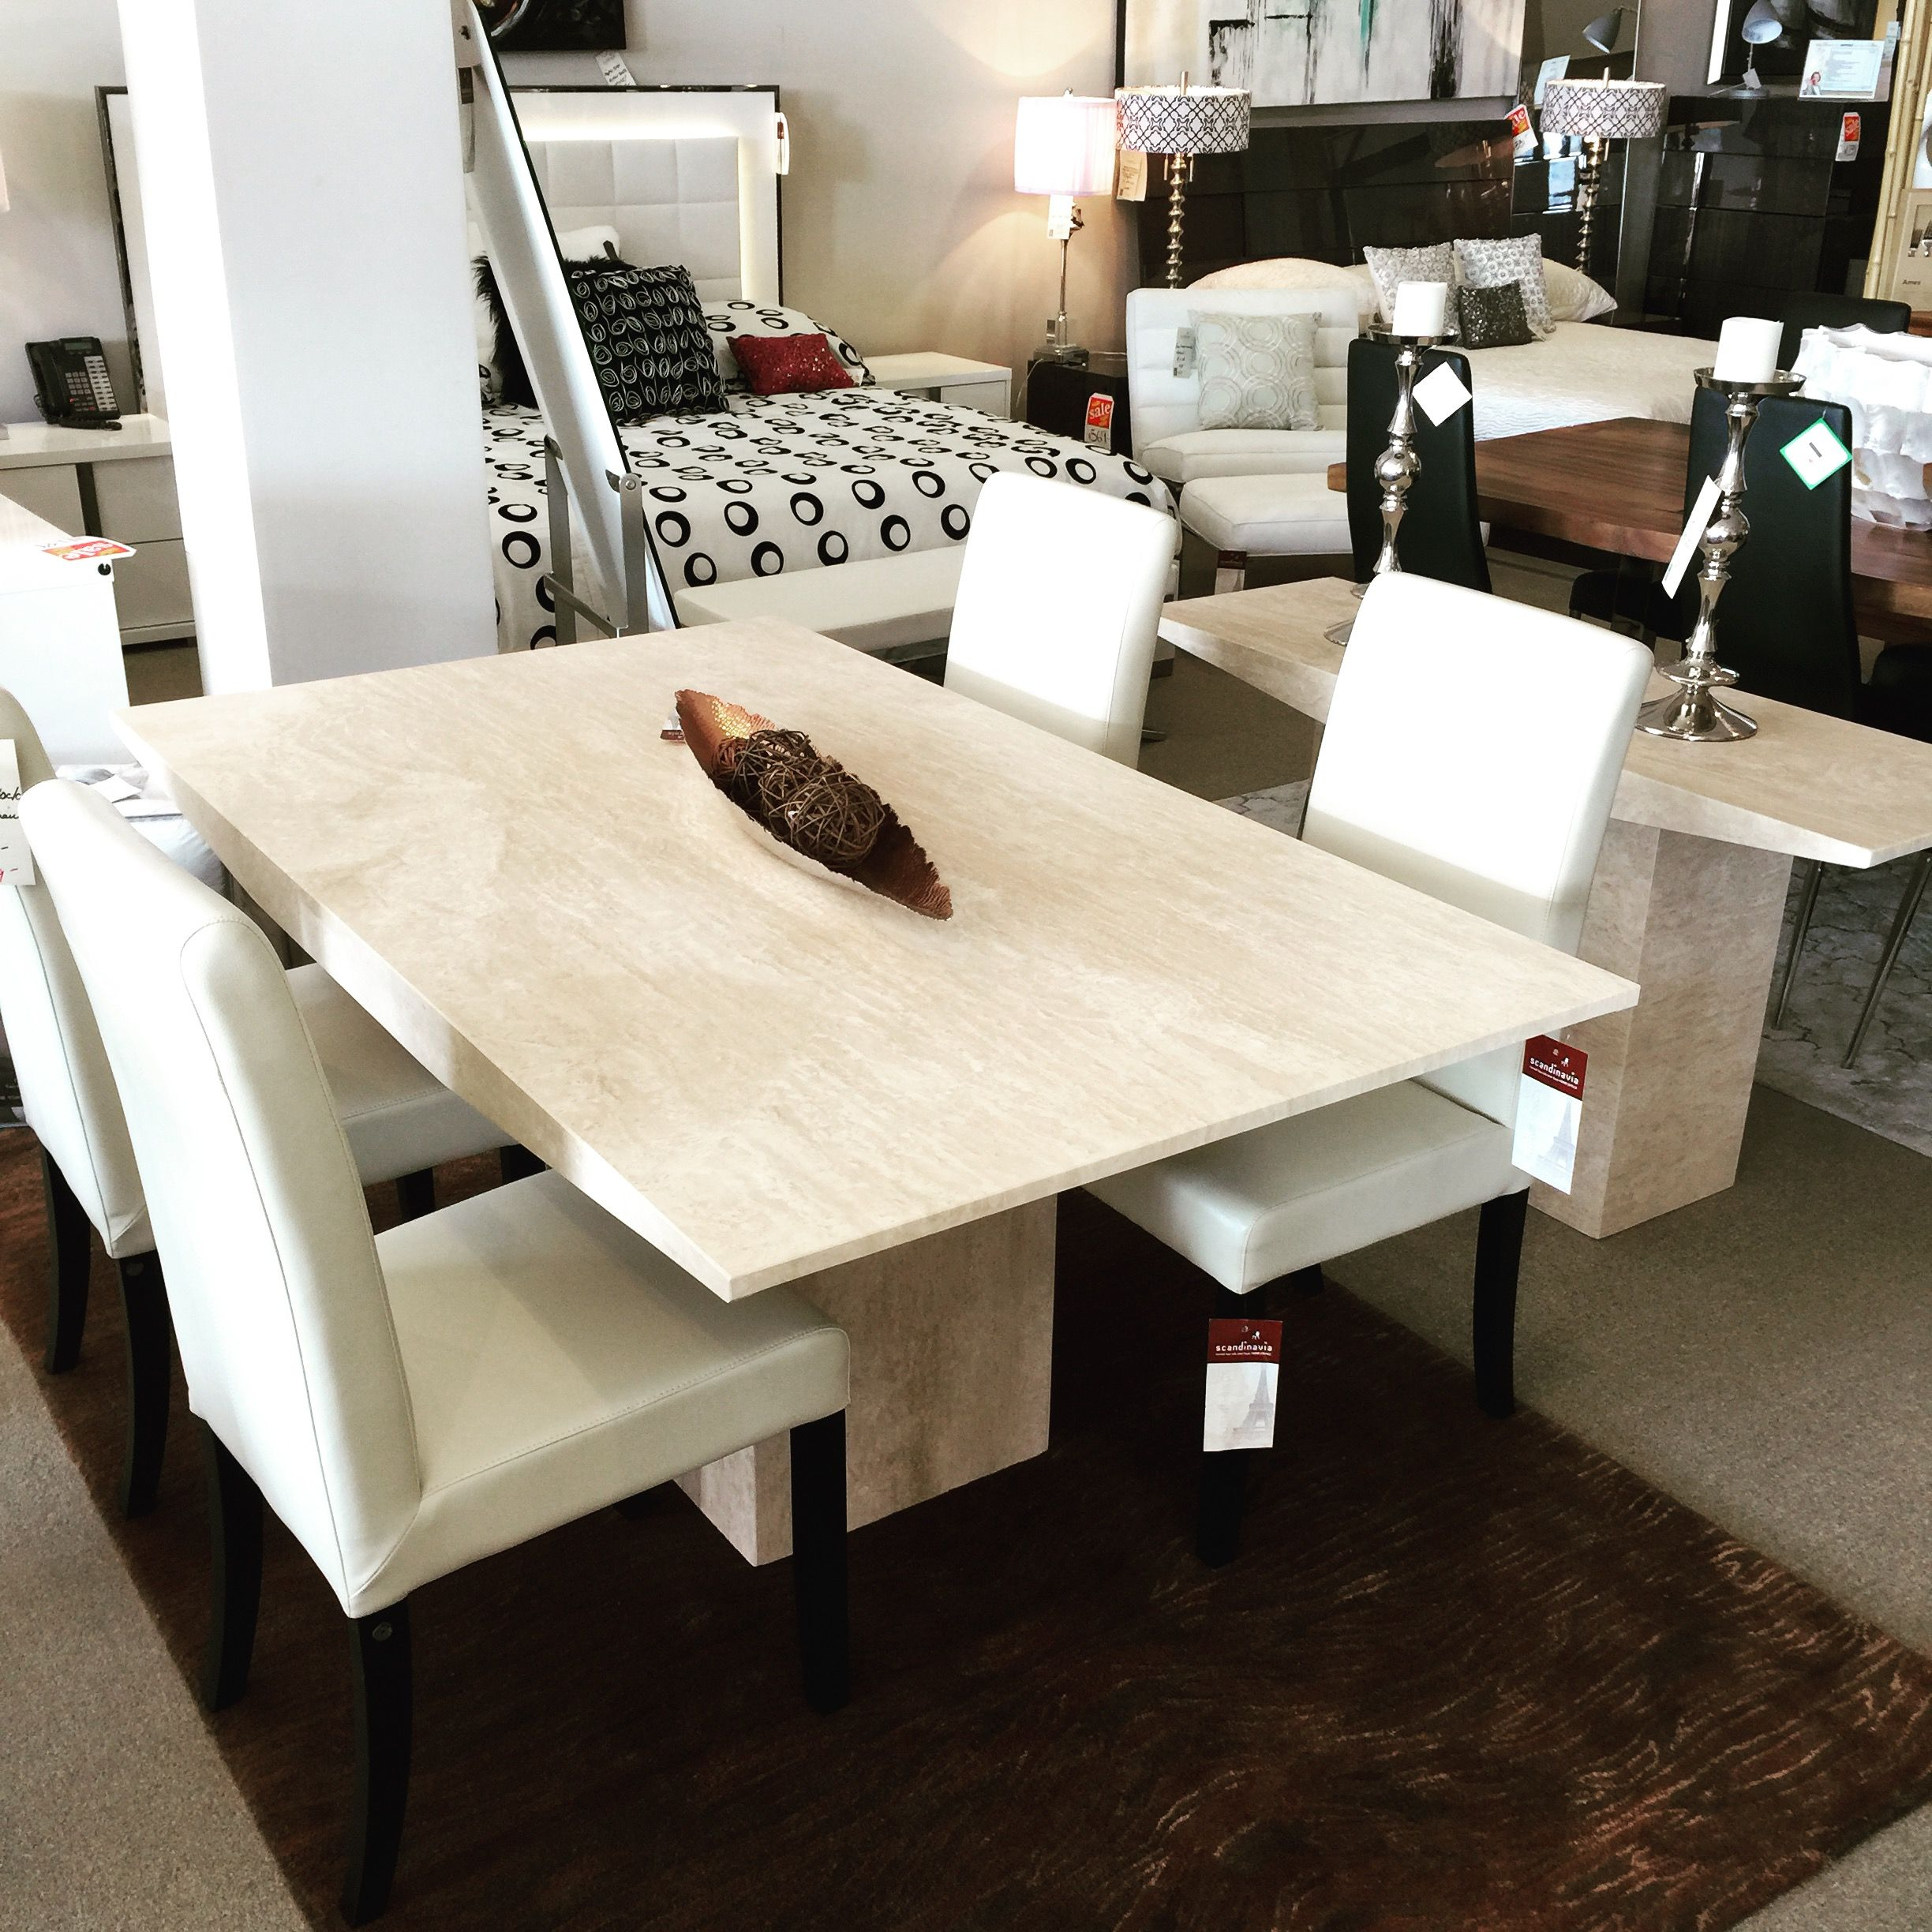 32 Stylish Dining Room Ideas To Impress Your Dinner Guests: Monaco Marble Dining Table Scandinavia Inc Metairie New